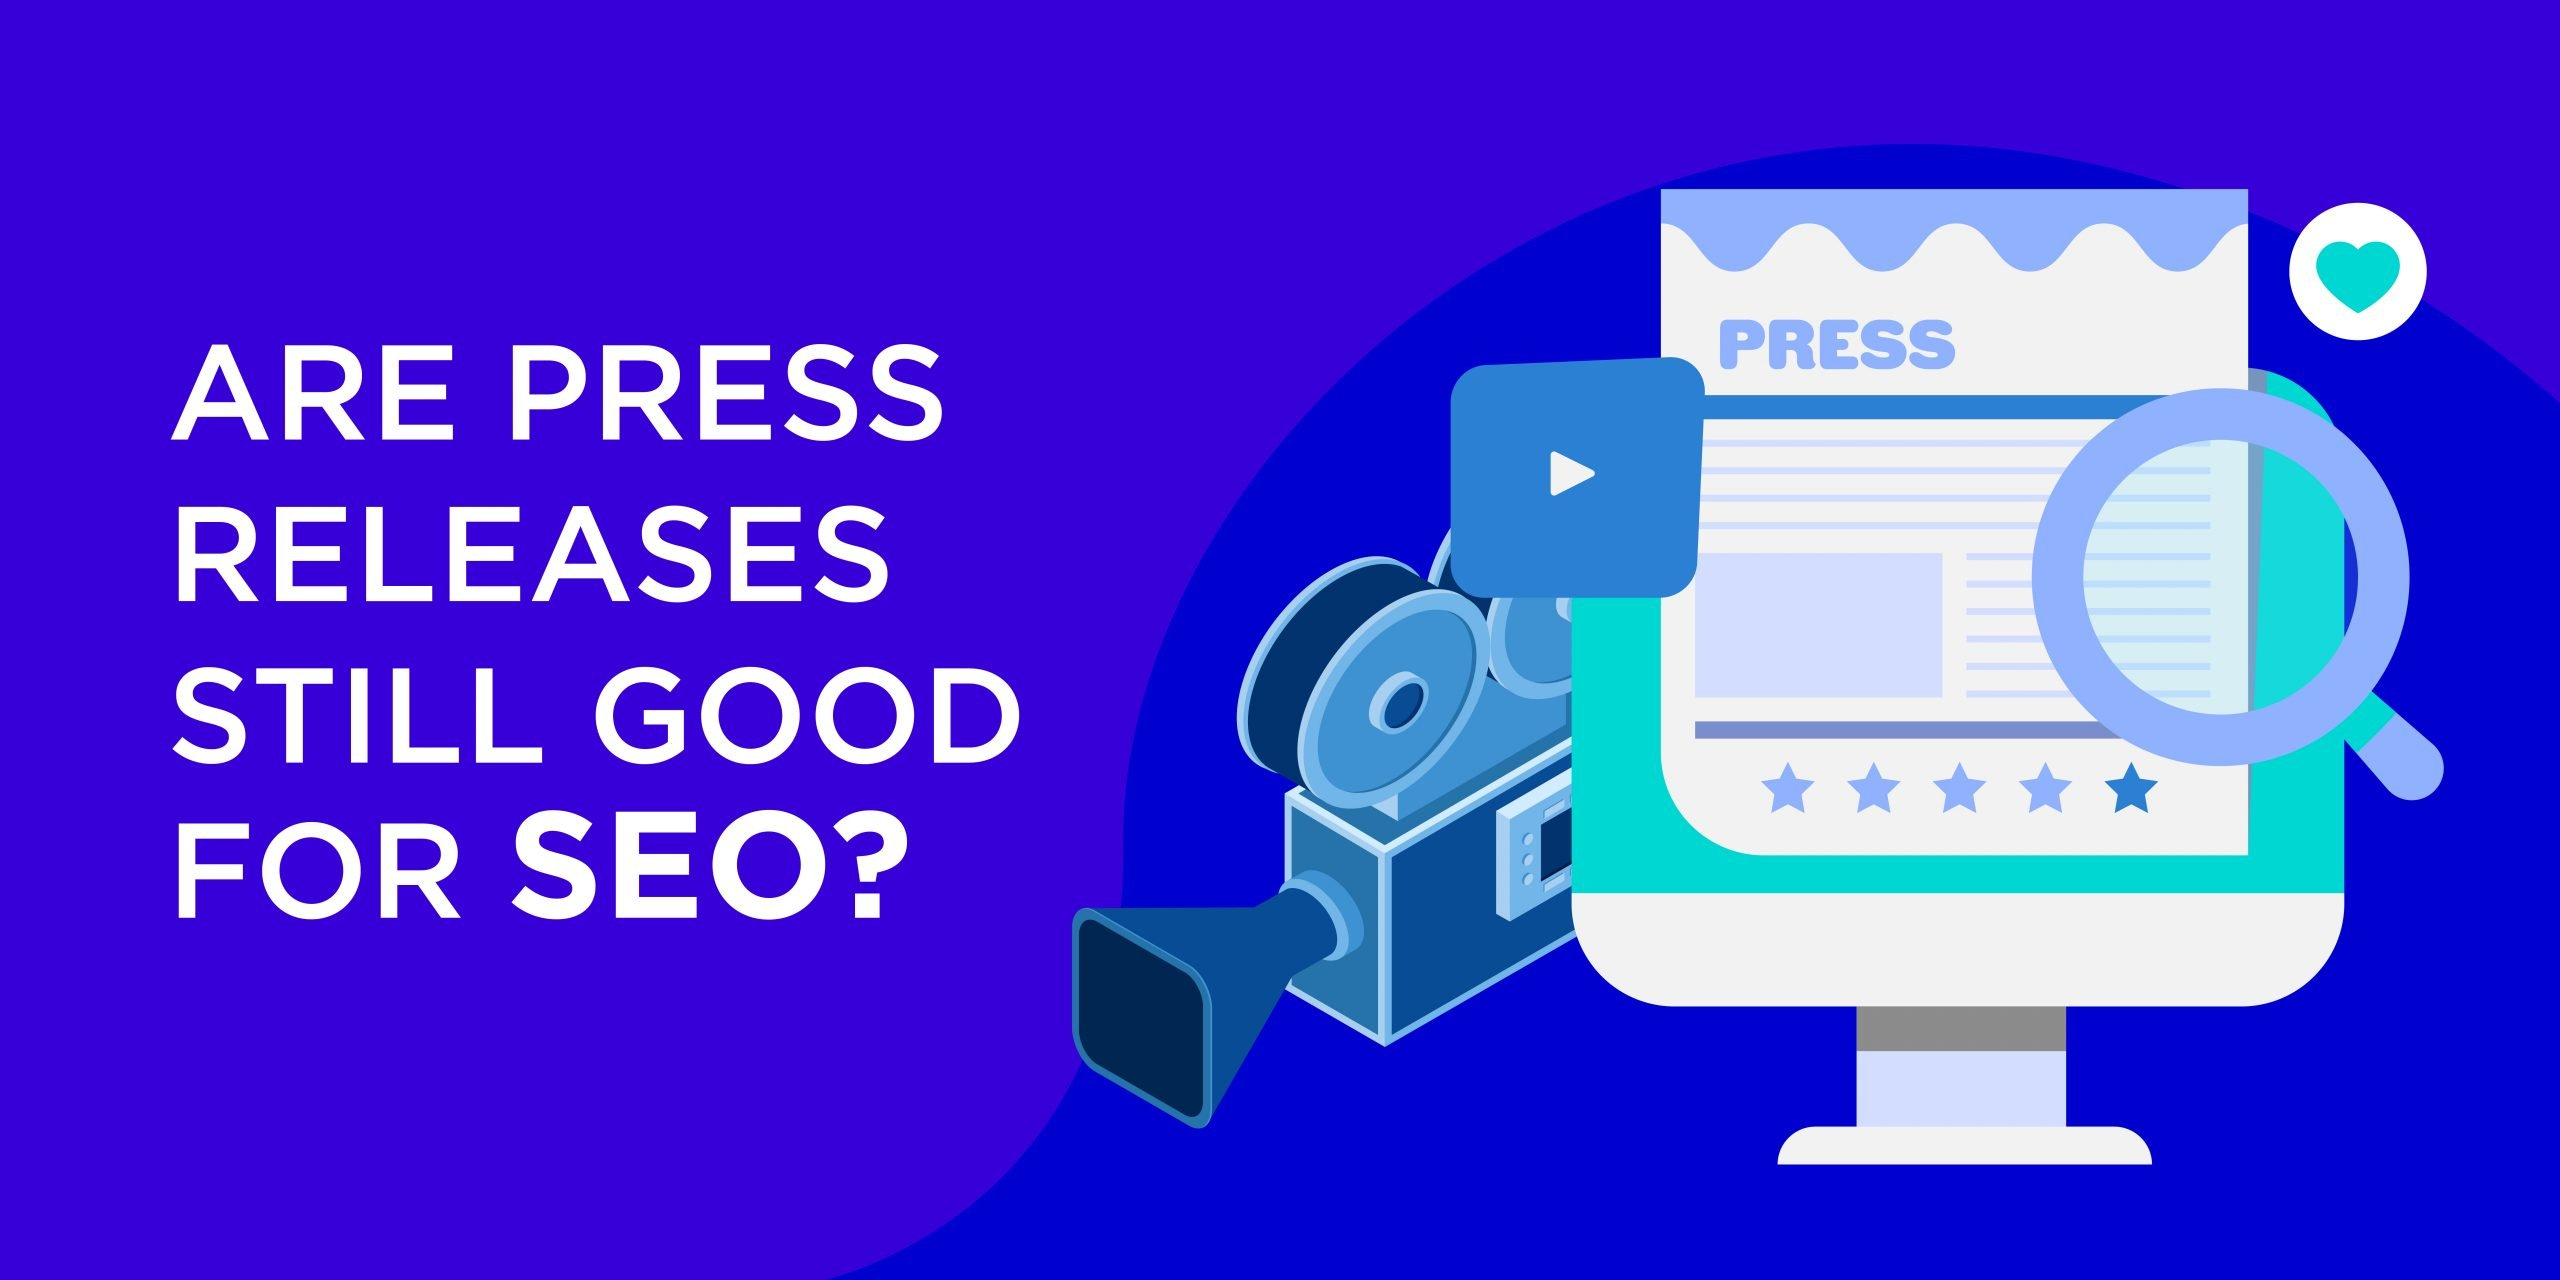 Are Press Releases Good for SEO?